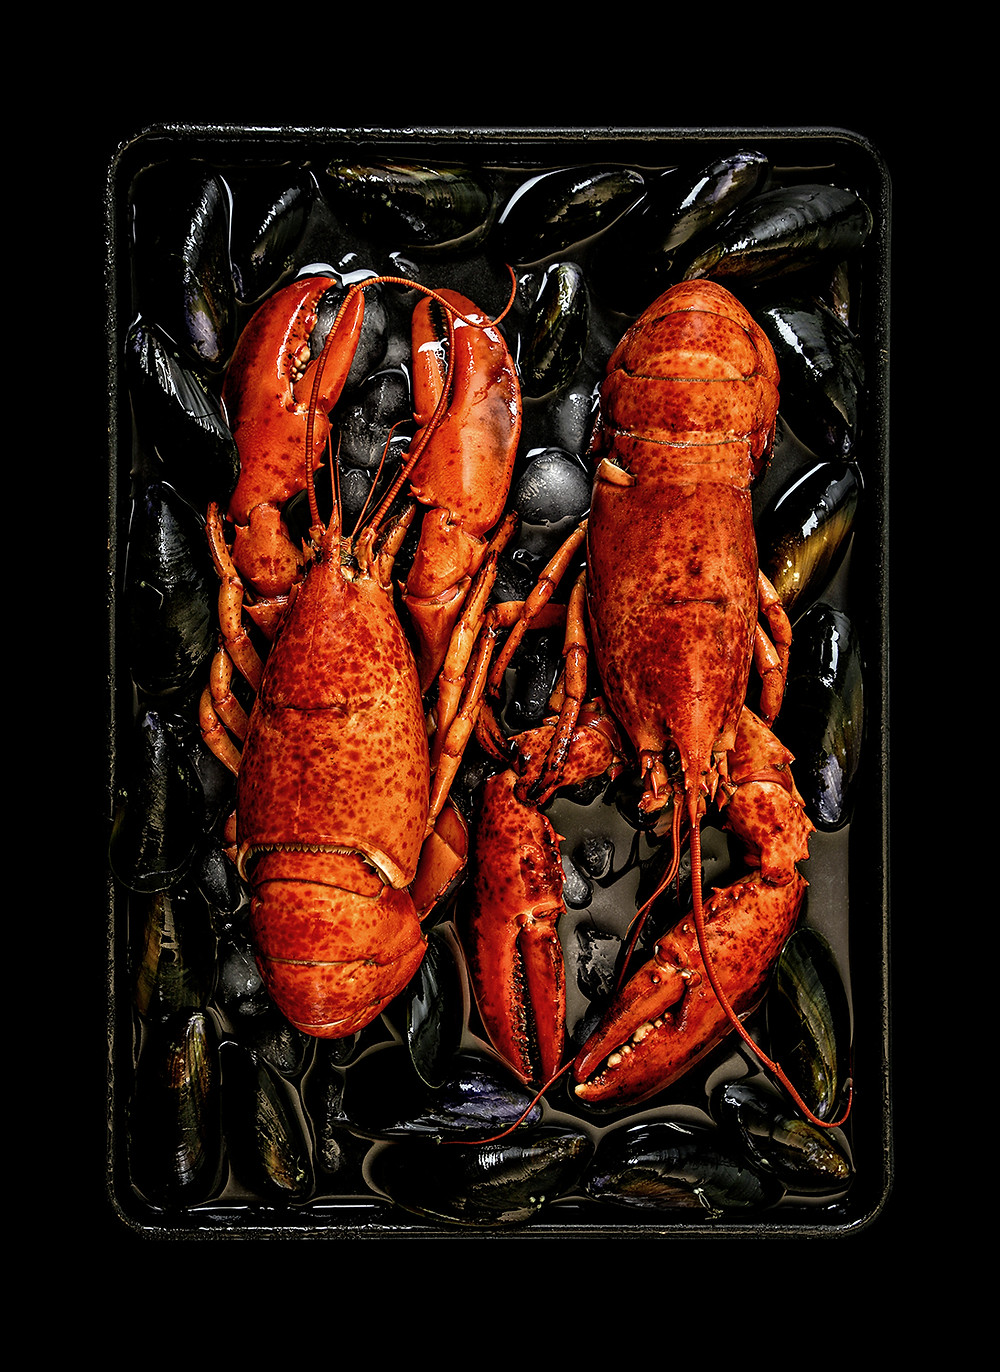 Lobsters and Mussels